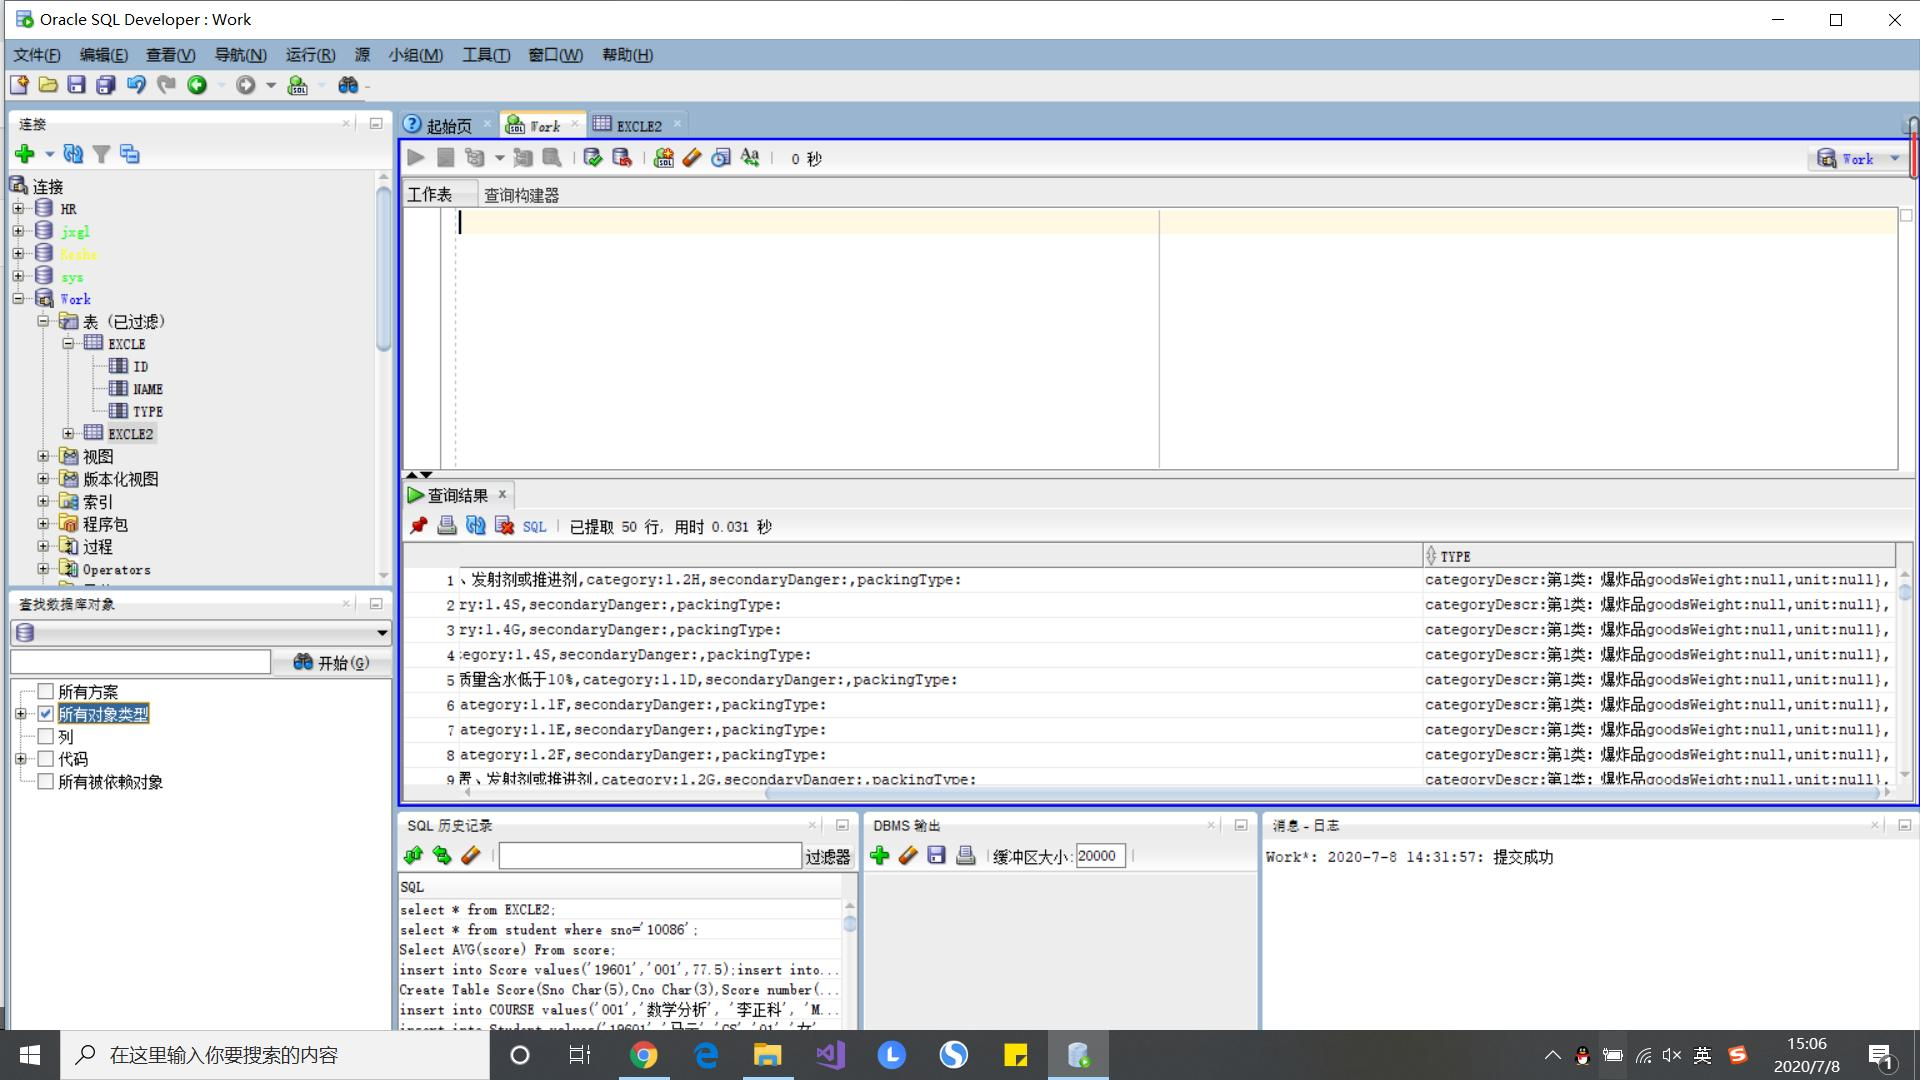 Oracle sql developer imports Excle table data - Programmer Sought